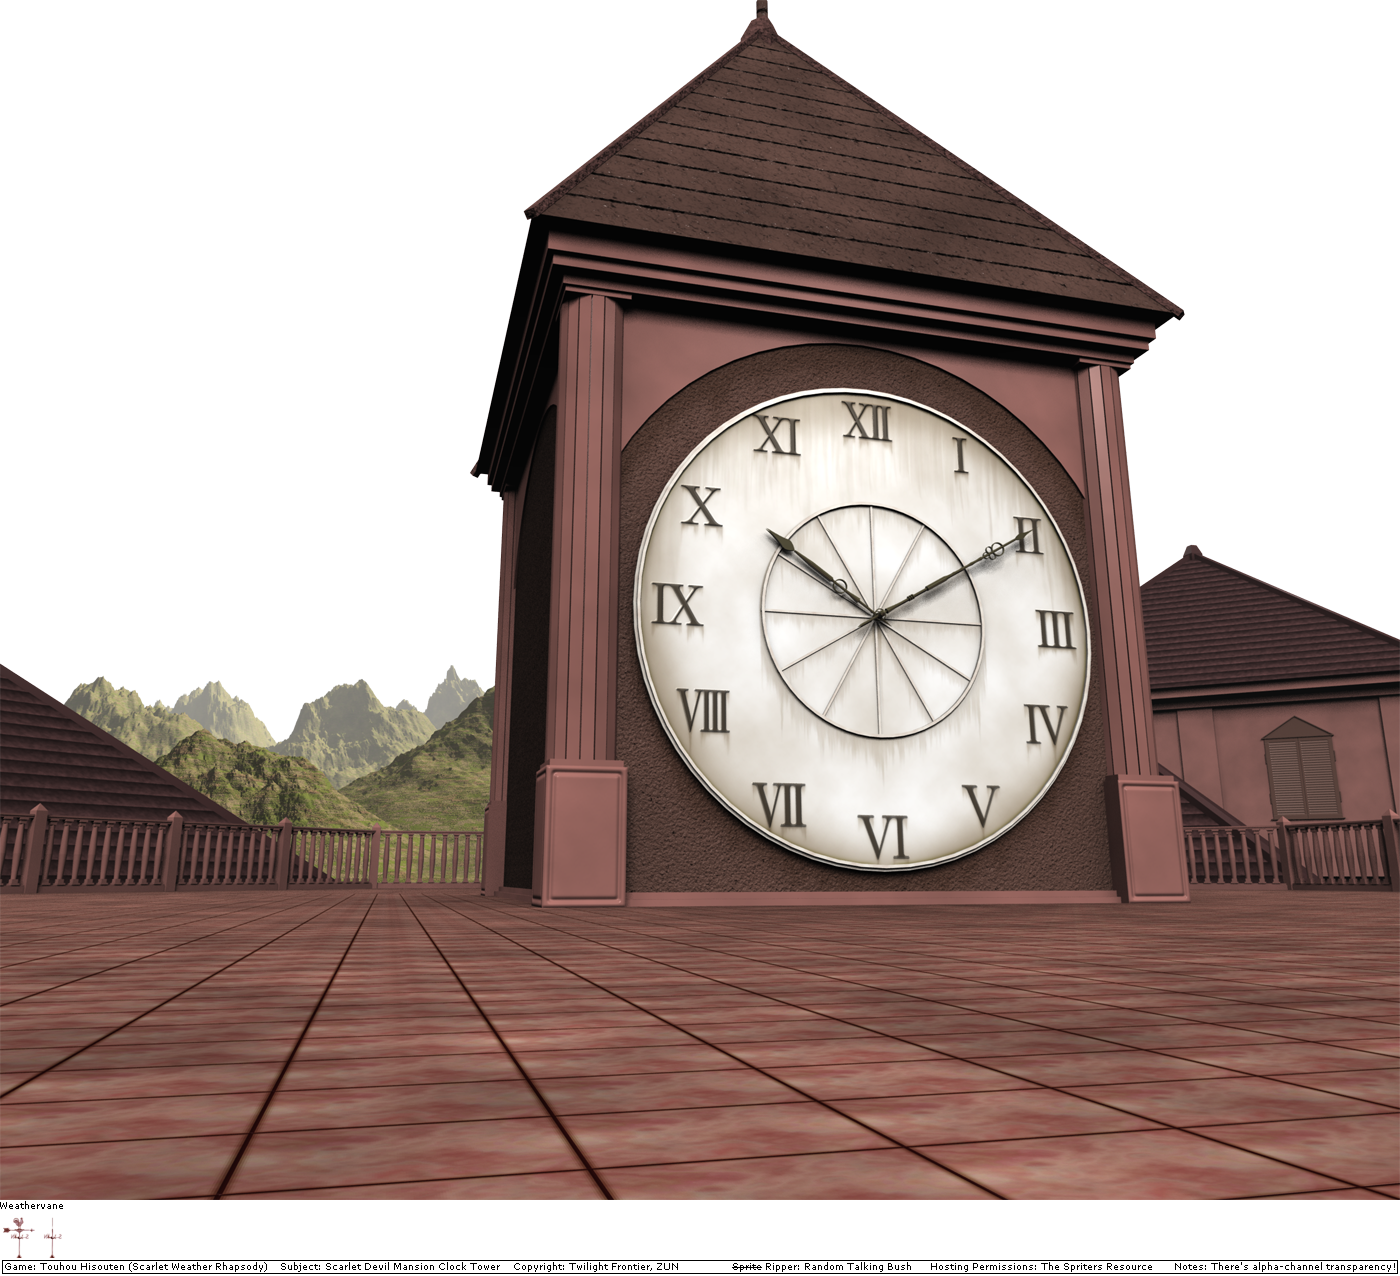 Scarlet Devil Mansion Clock Tower